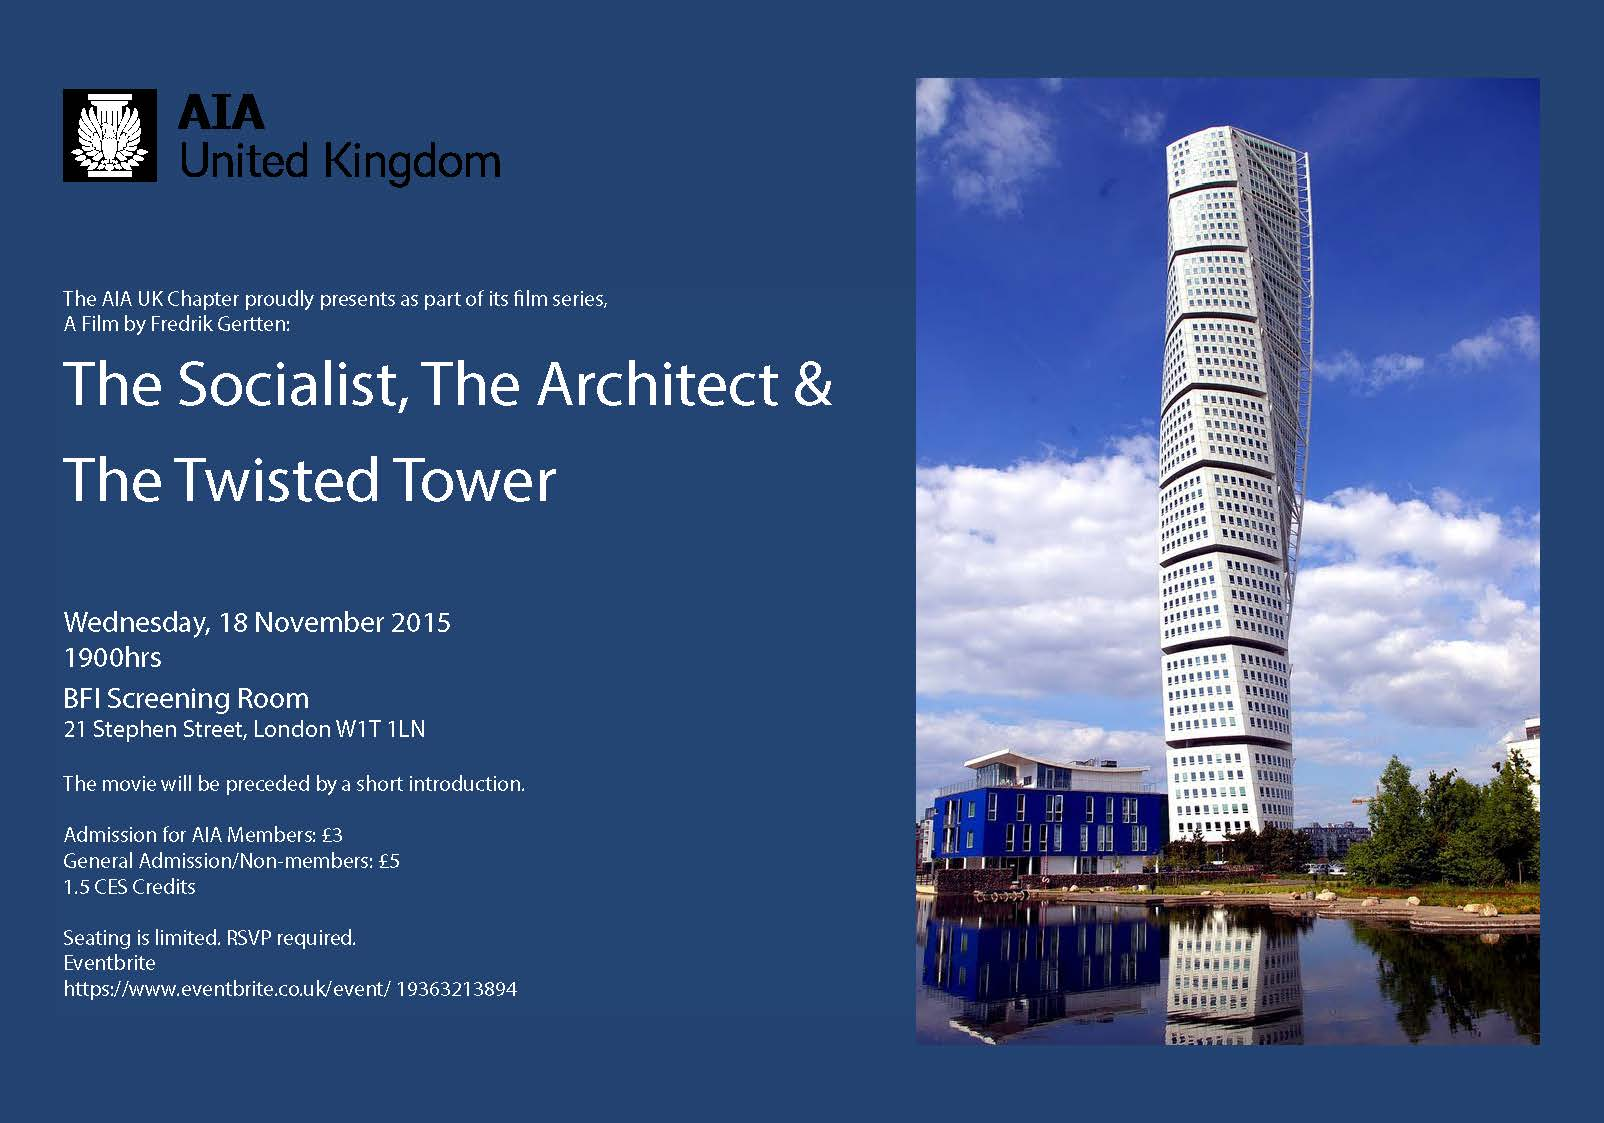 AIA+UK+Movie-The+socialist+the+architect+and+the+twisted+tower_Page_1.jpg